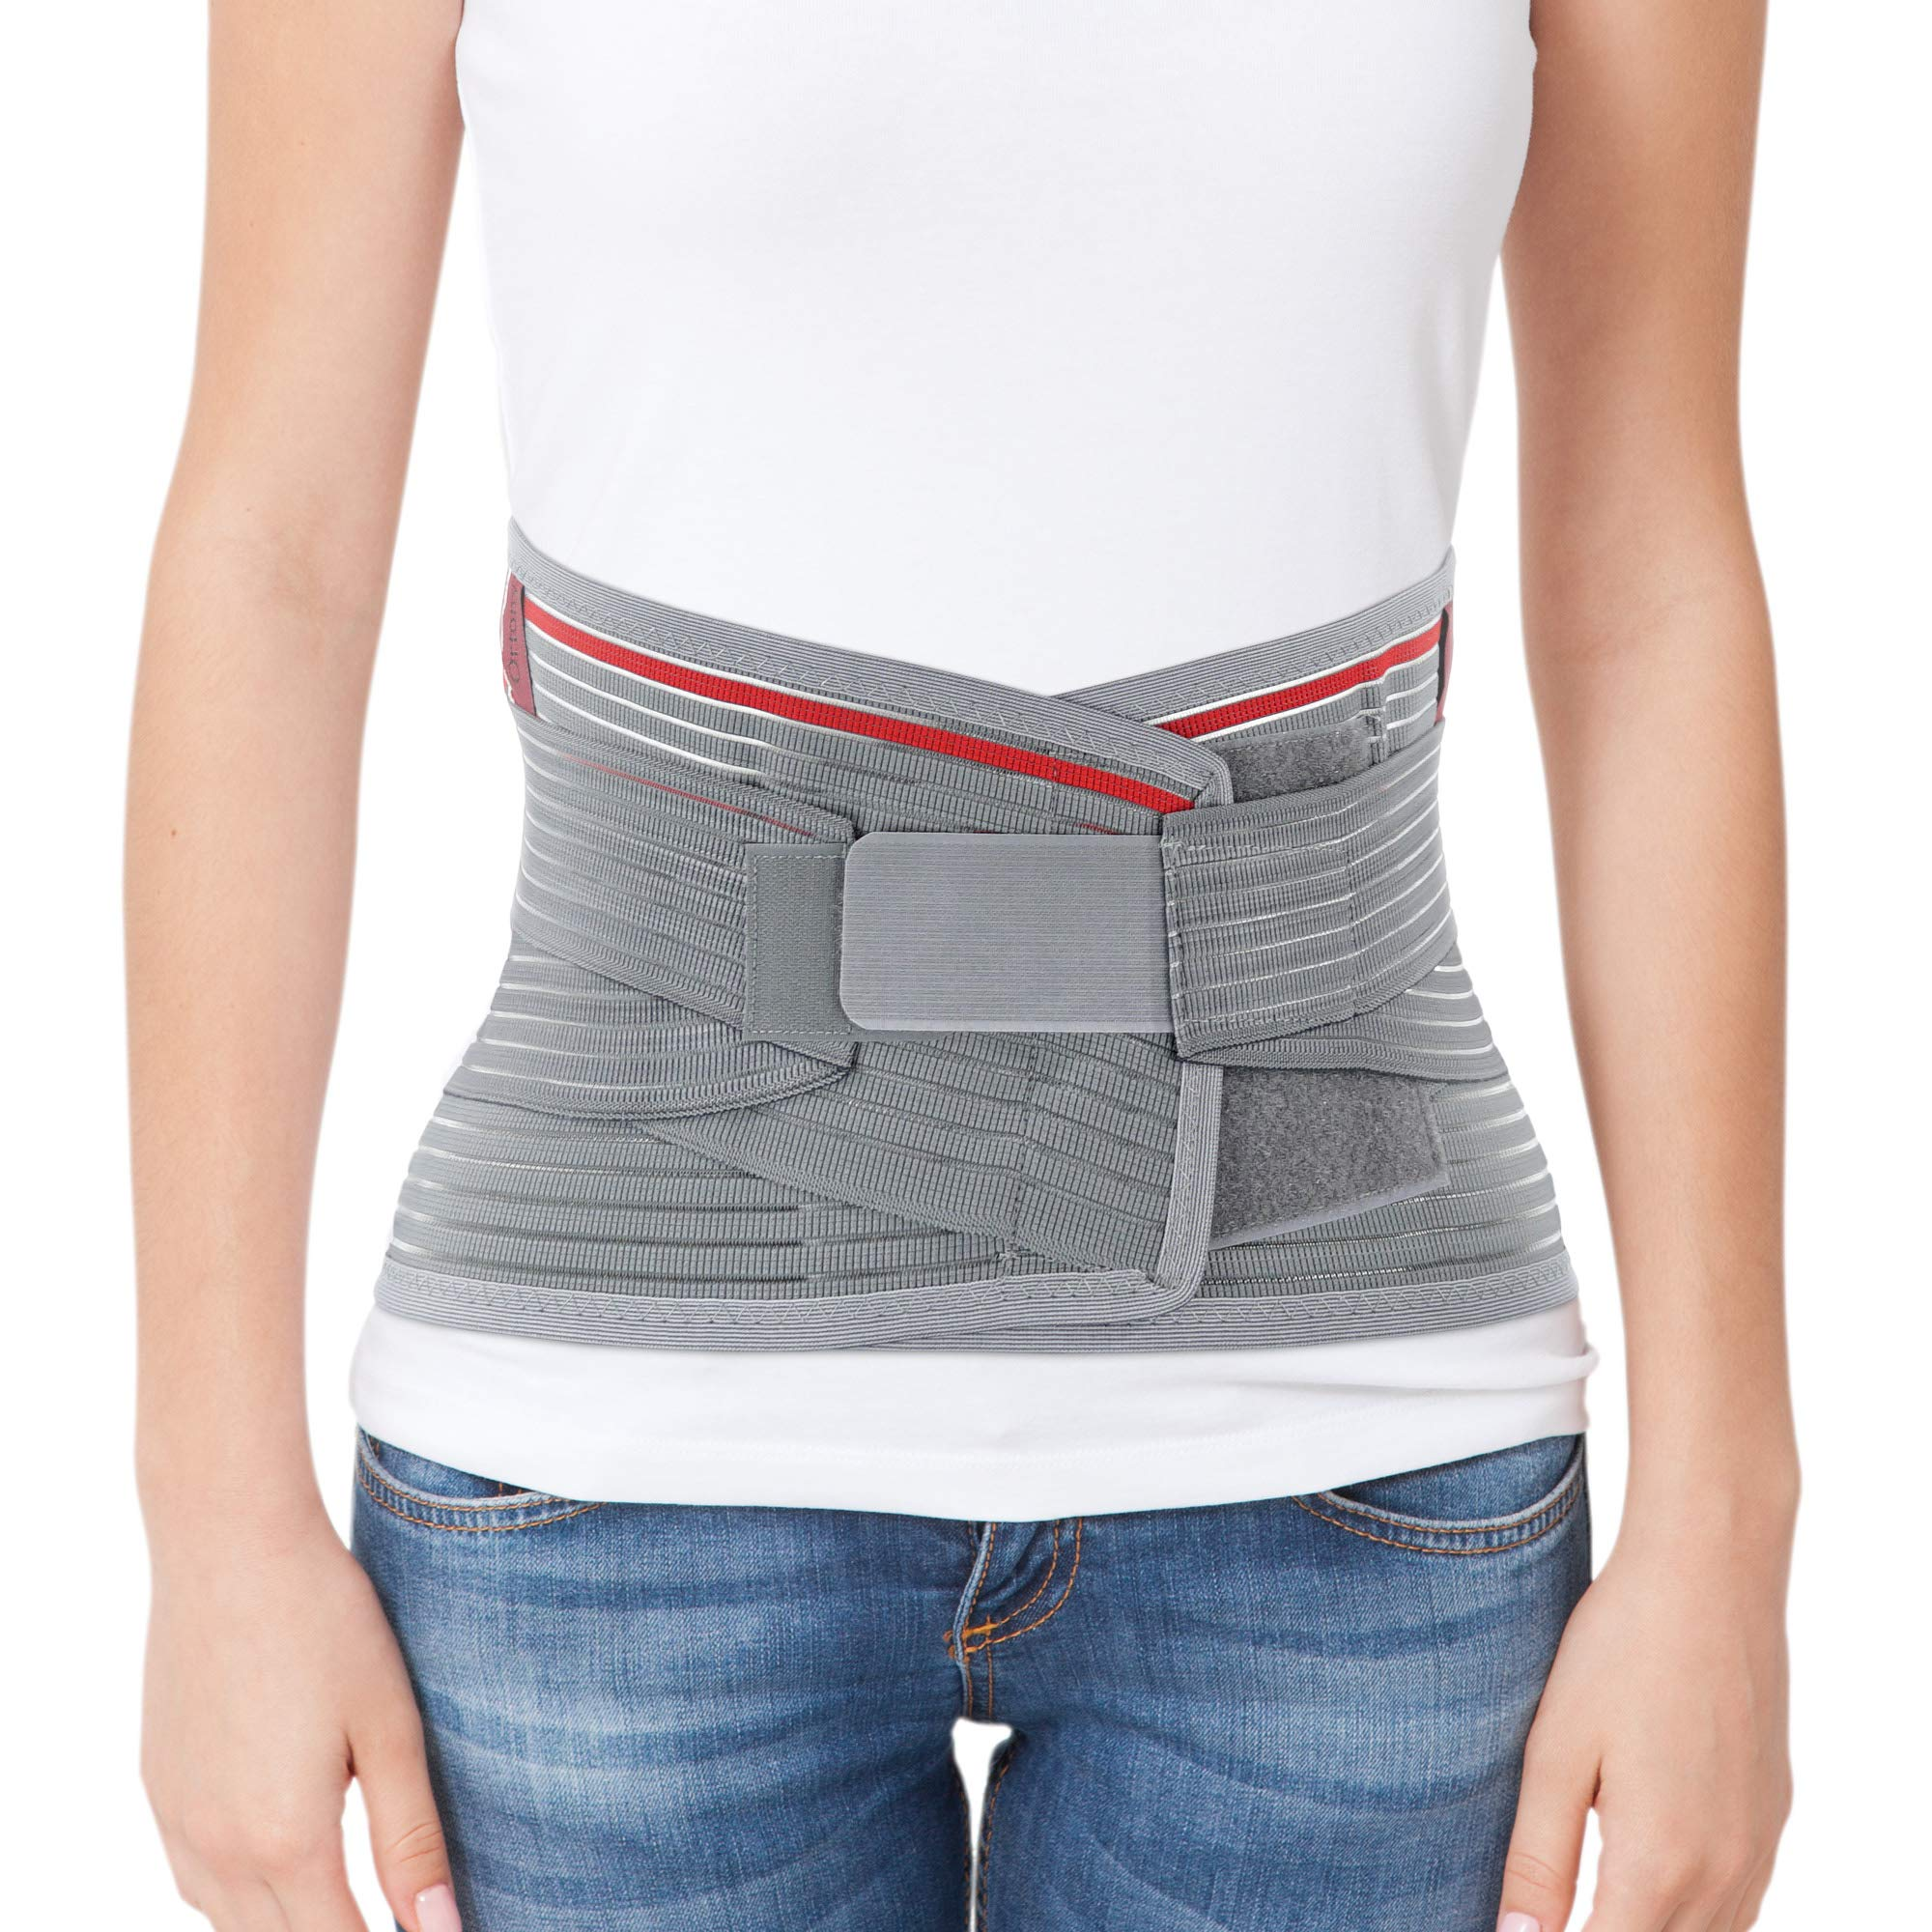 ORTONYX Lumbar Support Belt Lumbosacral Back Brace - Ergonomic Design and Breathable Material - M-L (Waist 31.5''-39.4'') Gray/Red